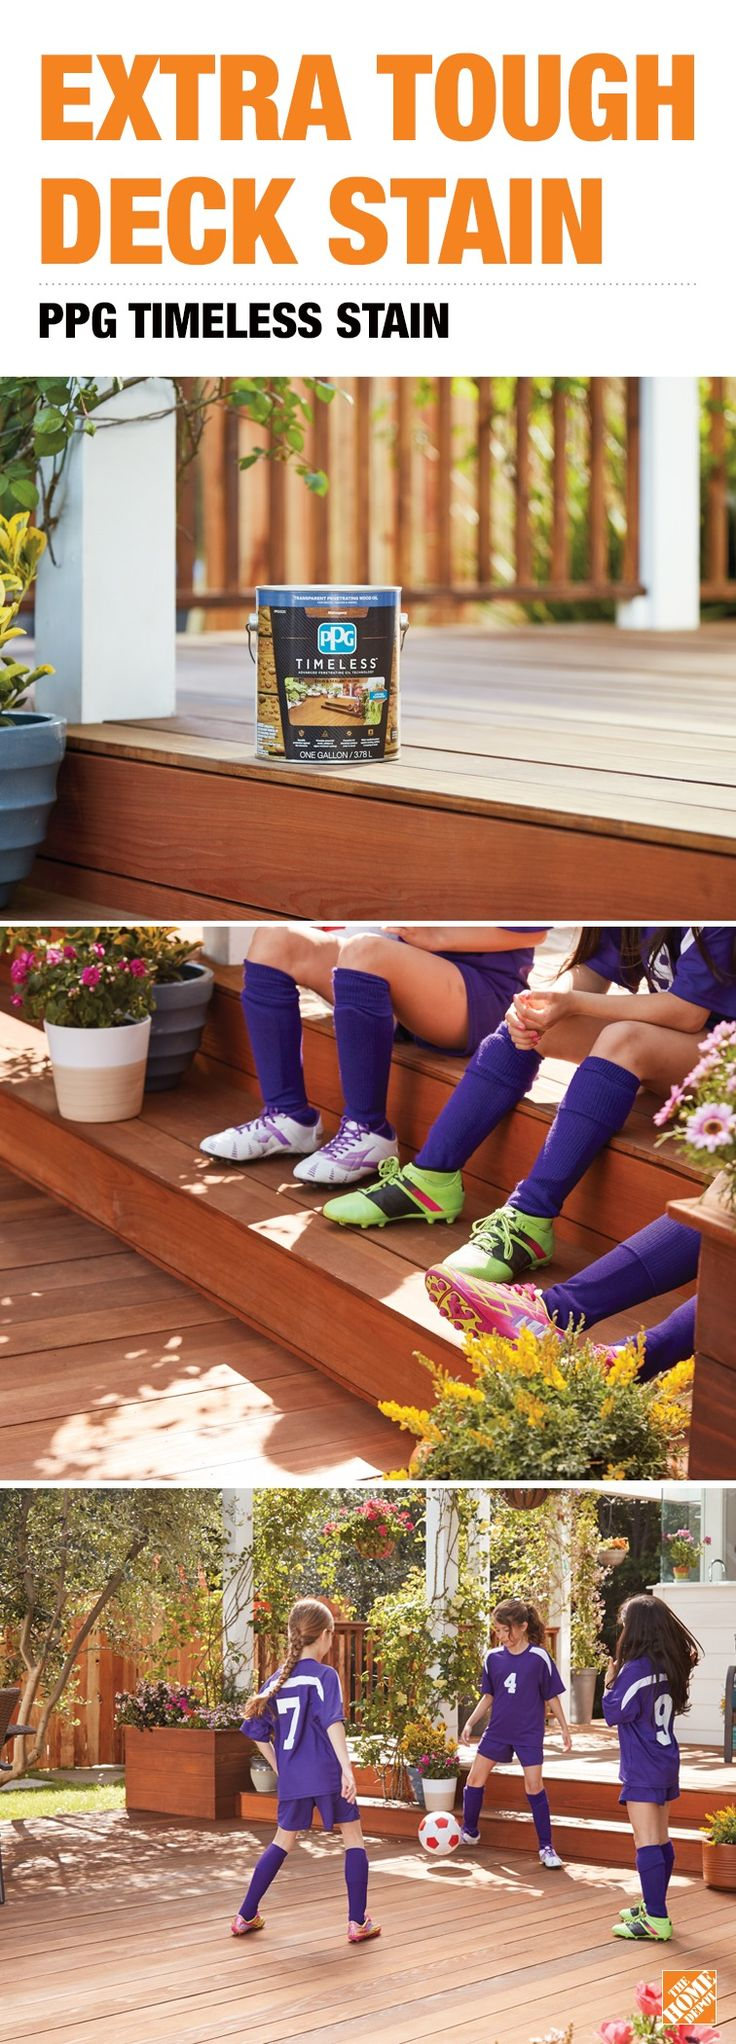 Choose a deck stain that's tough enough for anything your deck faces– from hard weather to hard wear. It's new PPG Timeless Stain, from a brand trusted by pros for over 100 years. Only at The Home Depot.